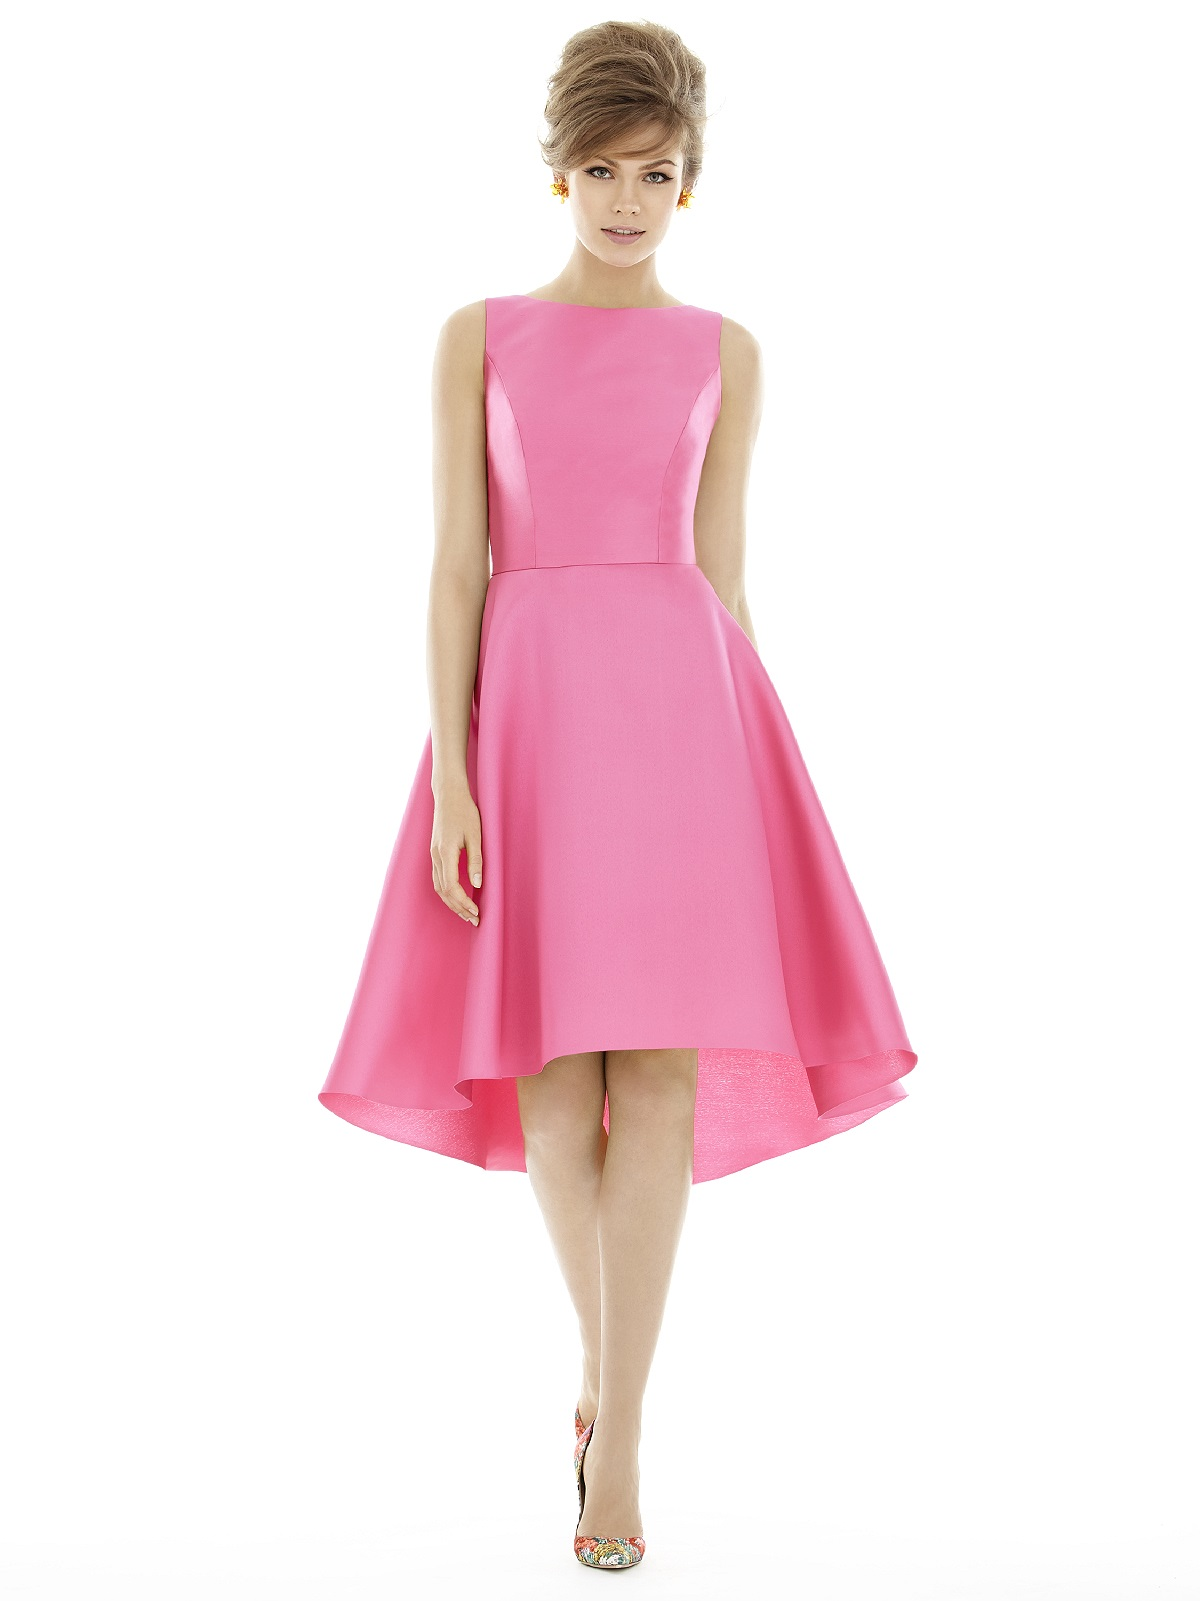 Alfred sung bridesmaid dressesalfred sung dresses d 697the dessy alfred sung bridesmaid dresses alfred sung d697 loading zoom ombrellifo Gallery